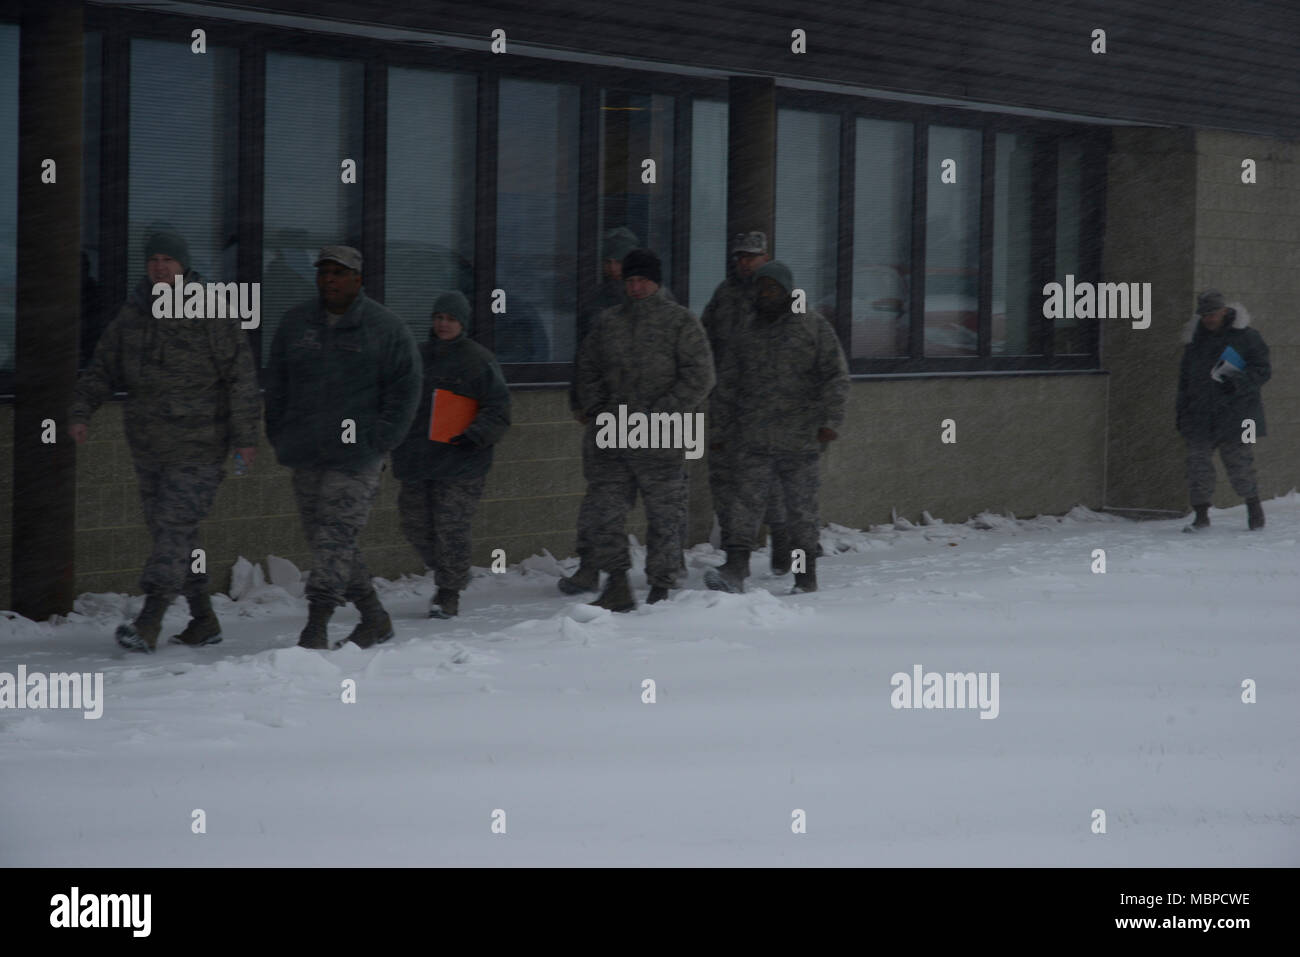 More than a dozen Airmen, assigned to the 105th Airlift Wing, gather cold weather gear and prepare to respond to heavy snow and wind at Stewart Air National Guard Base Jan. 4, 2017. The Airmen are tasked as part of New York state's Initial Response Force to help local officials mitigate the destruction of such weather events. (U.S. Air Force photo by Staff Sgt. Julio A. Olivencia Jr.) Stock Photo